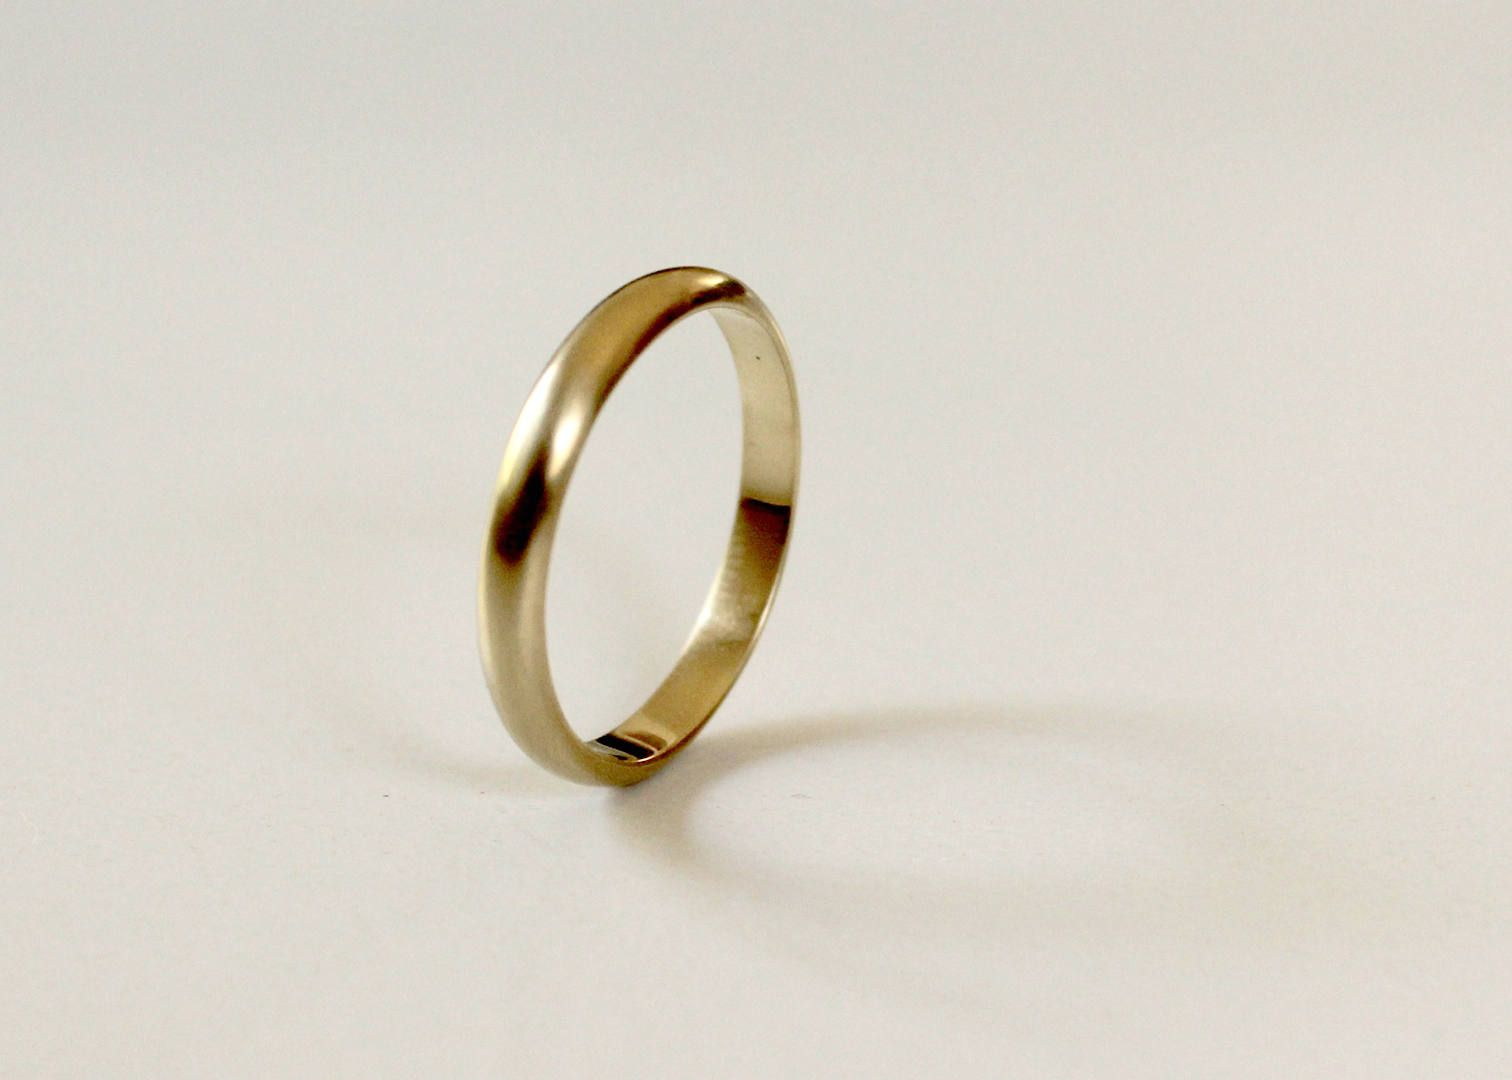 14k Gold Ring Man Wedding Men Band Women Unique Thin By Krishersjewelry On Etsy